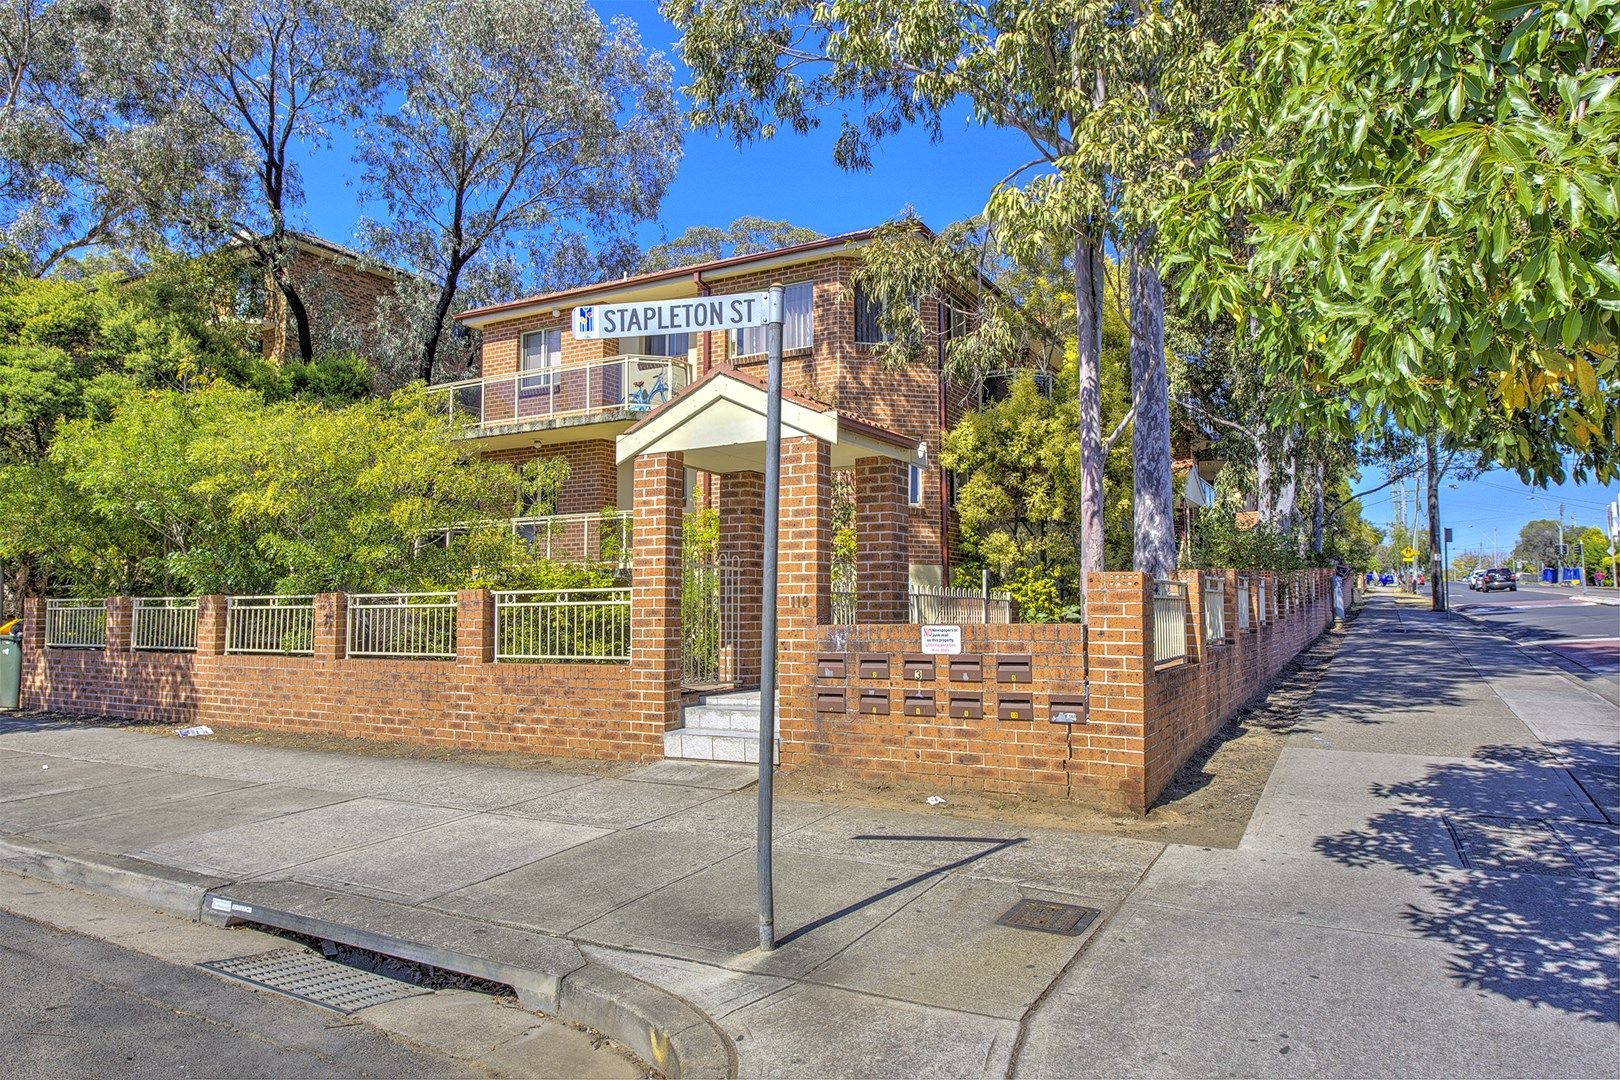 5/118 Stapleton Street, Pendle Hill NSW 2145, Image 0